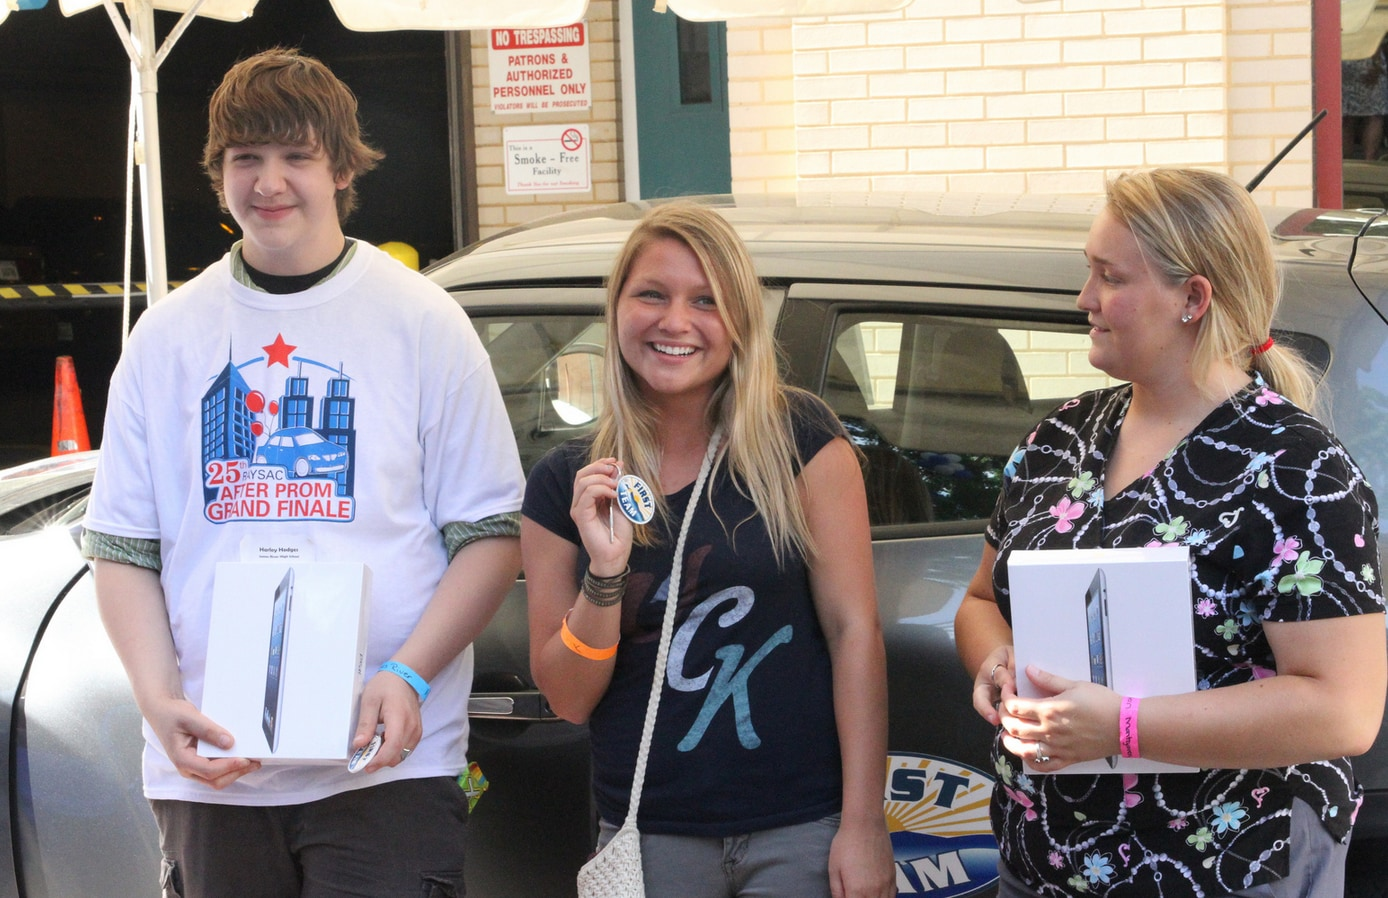 First team auto mall raysac after prom grand finale for Charity motors on grand river